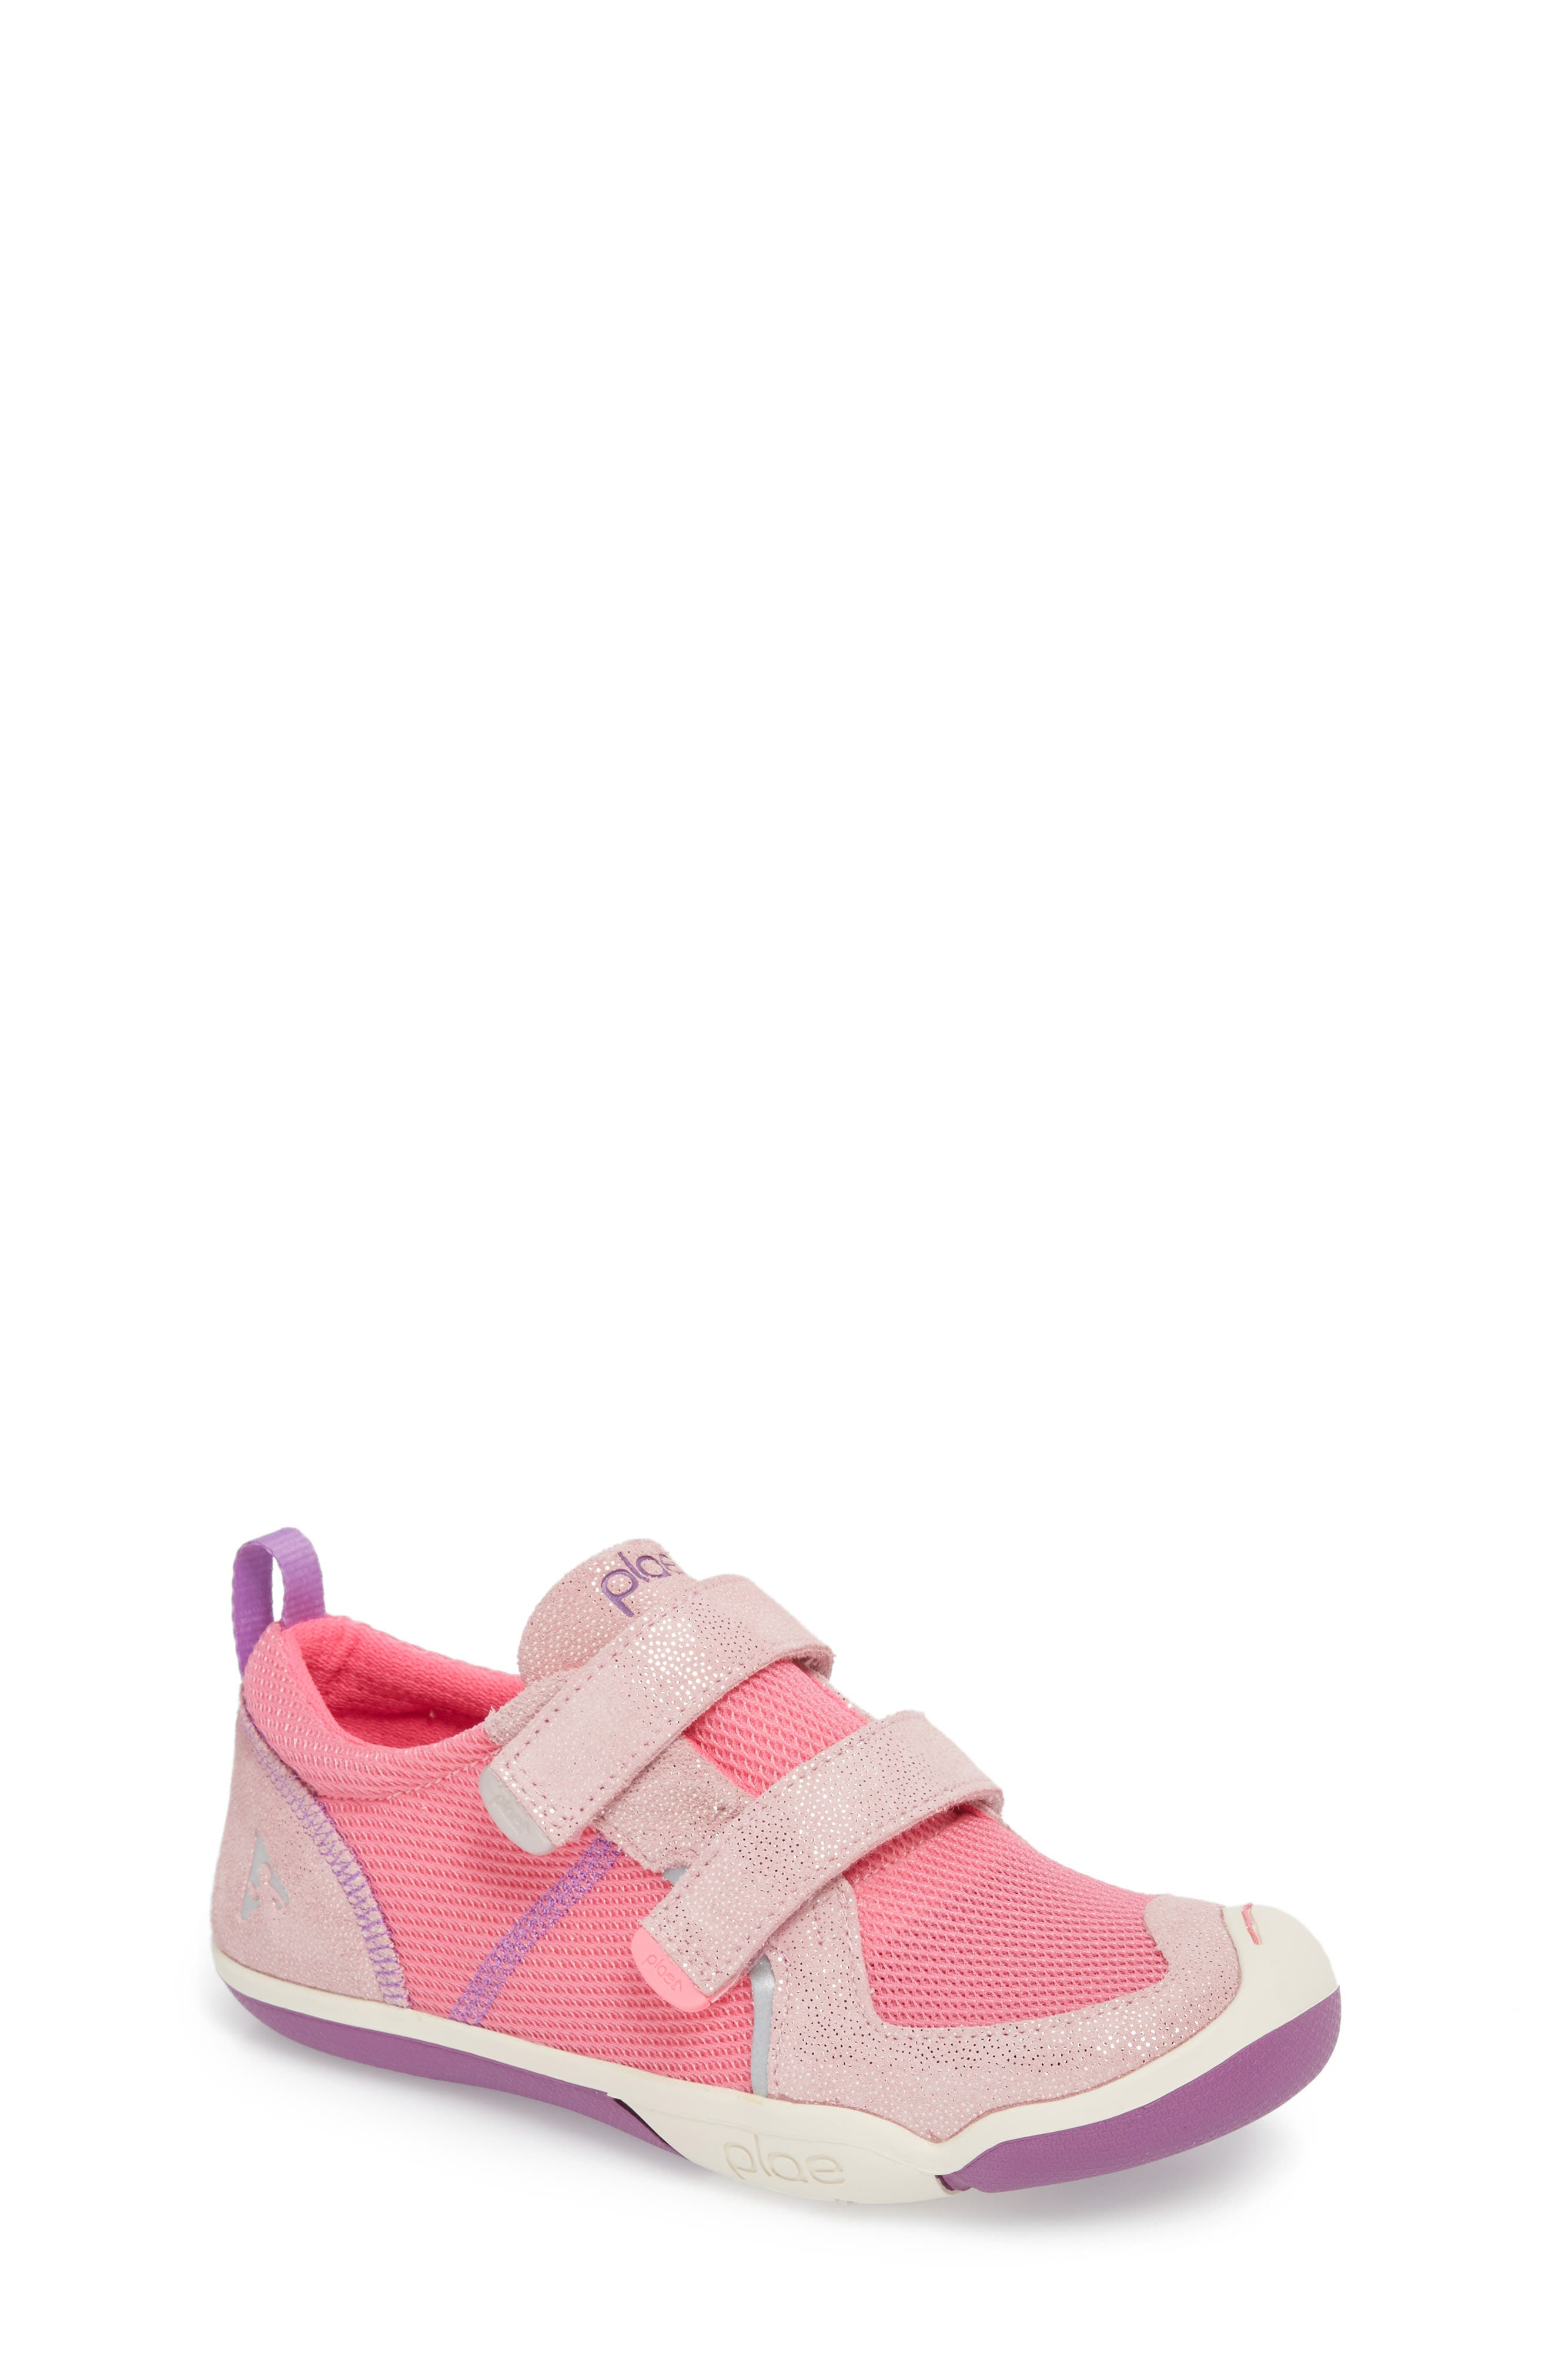 PLAE,                             'Ty' Customizable Sneaker,                             Main thumbnail 1, color,                             PINK/ PINK/ DEWBERRY